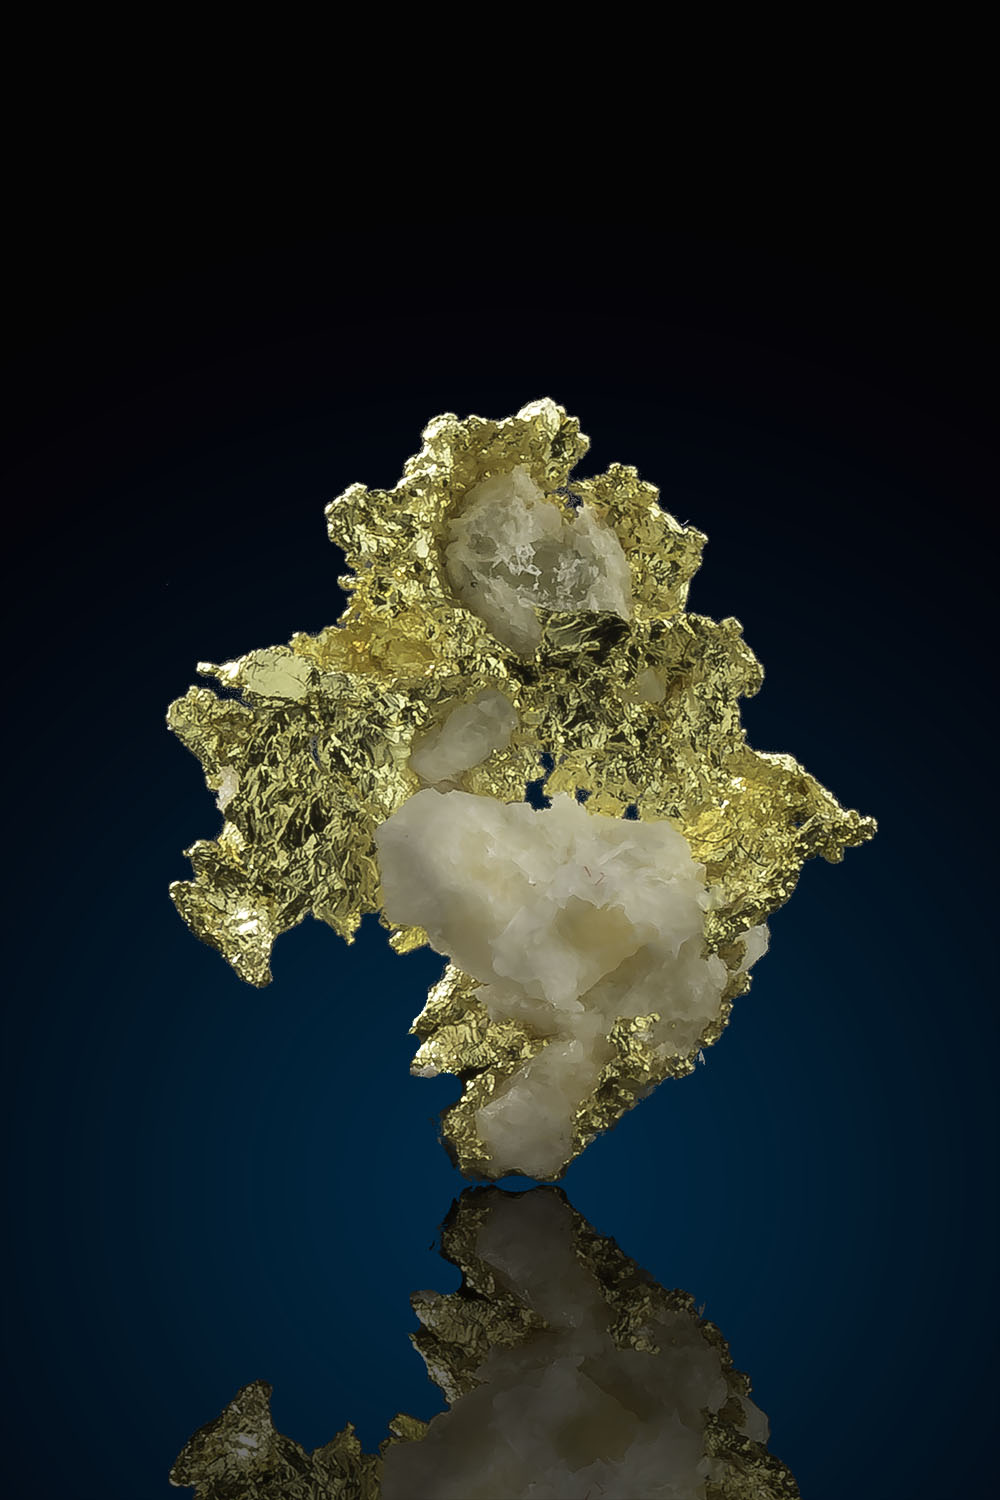 Intricate Crystalline Gold Specimen - Allegheny California